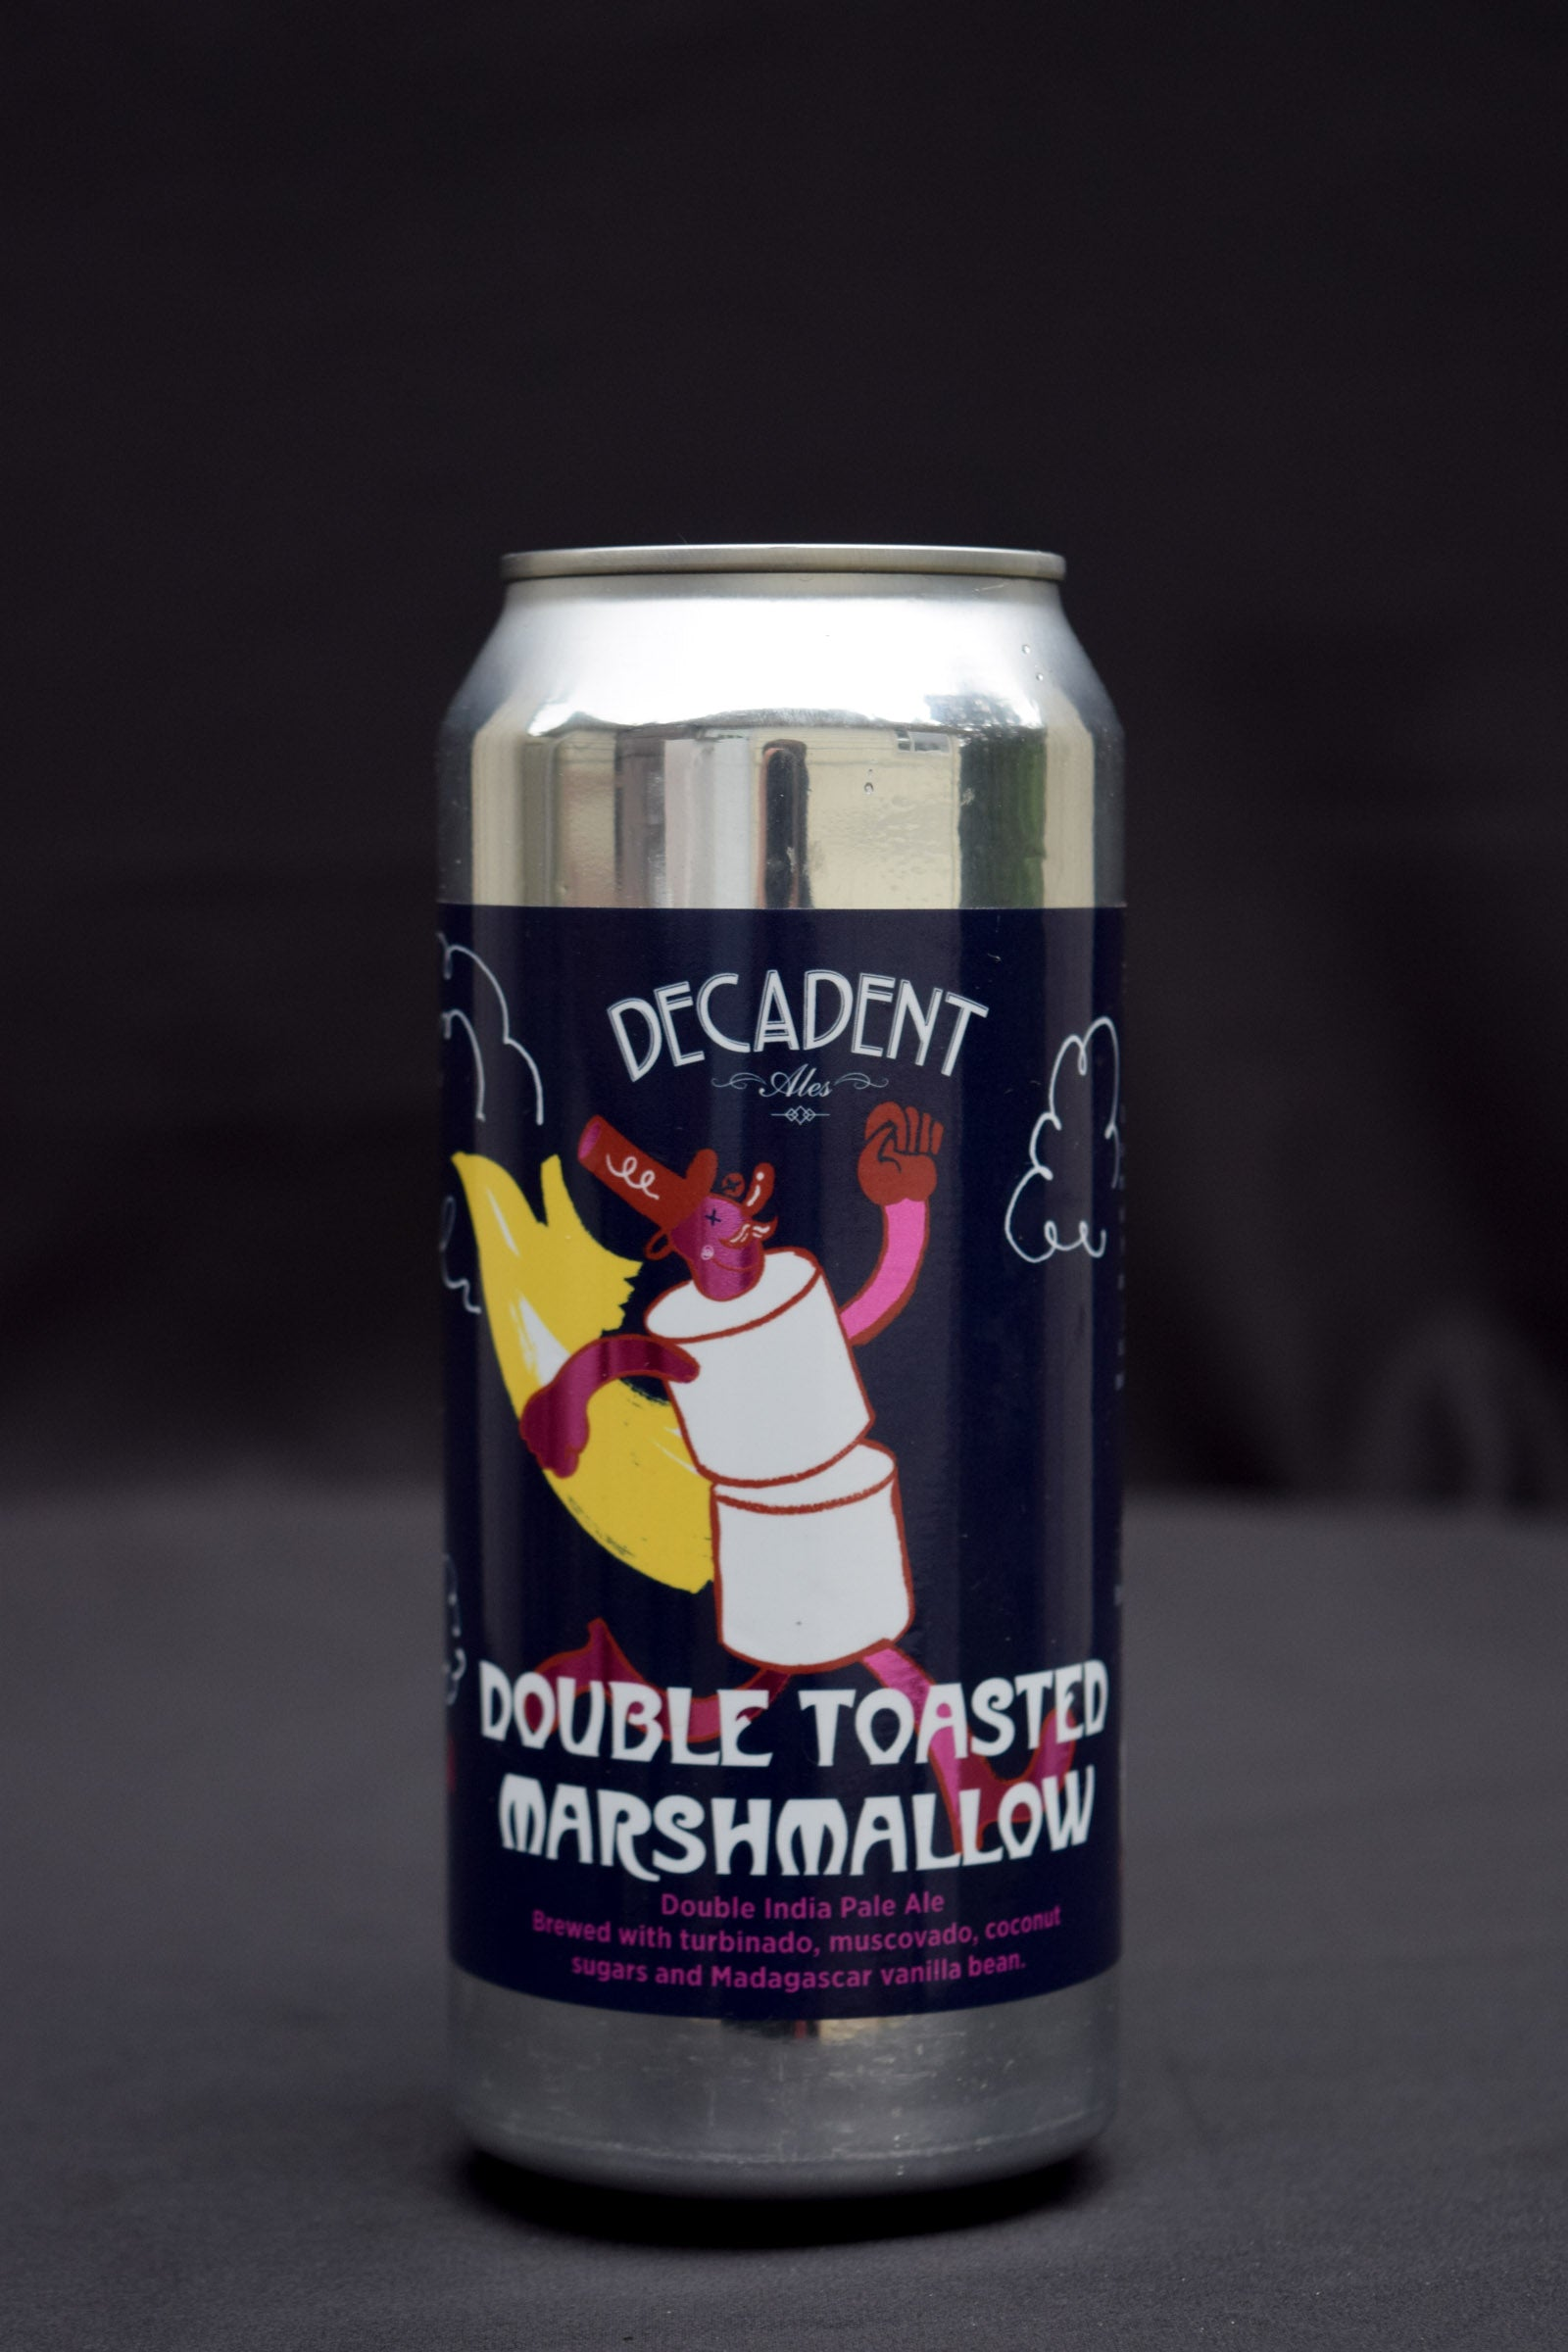 Decadent Ales Double Toasted Marshmallow Imperial IPA